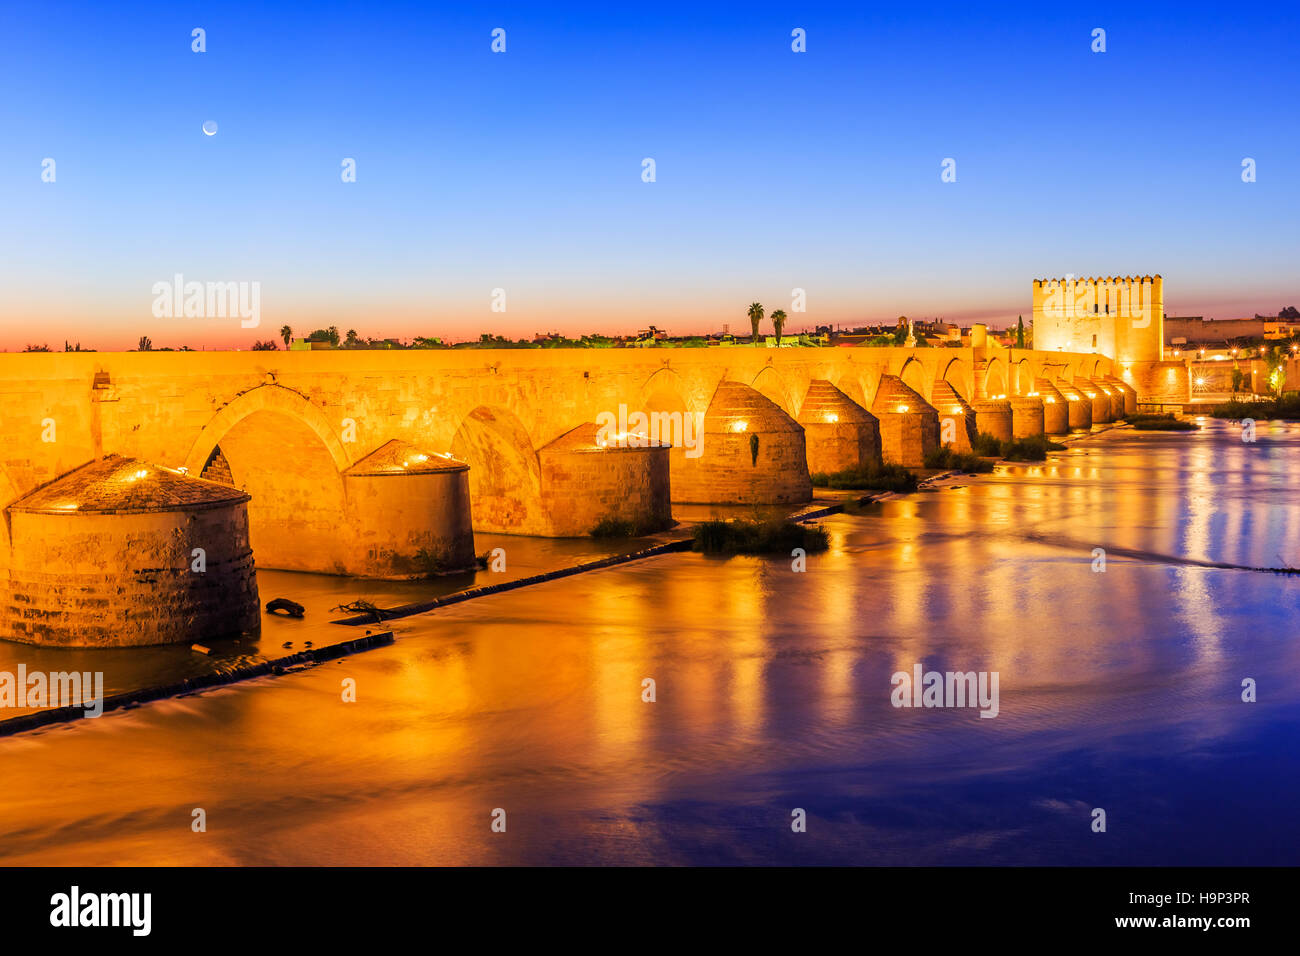 Cordoba, Spain. Roman Bridge on the Guadalquivir River. - Stock Image